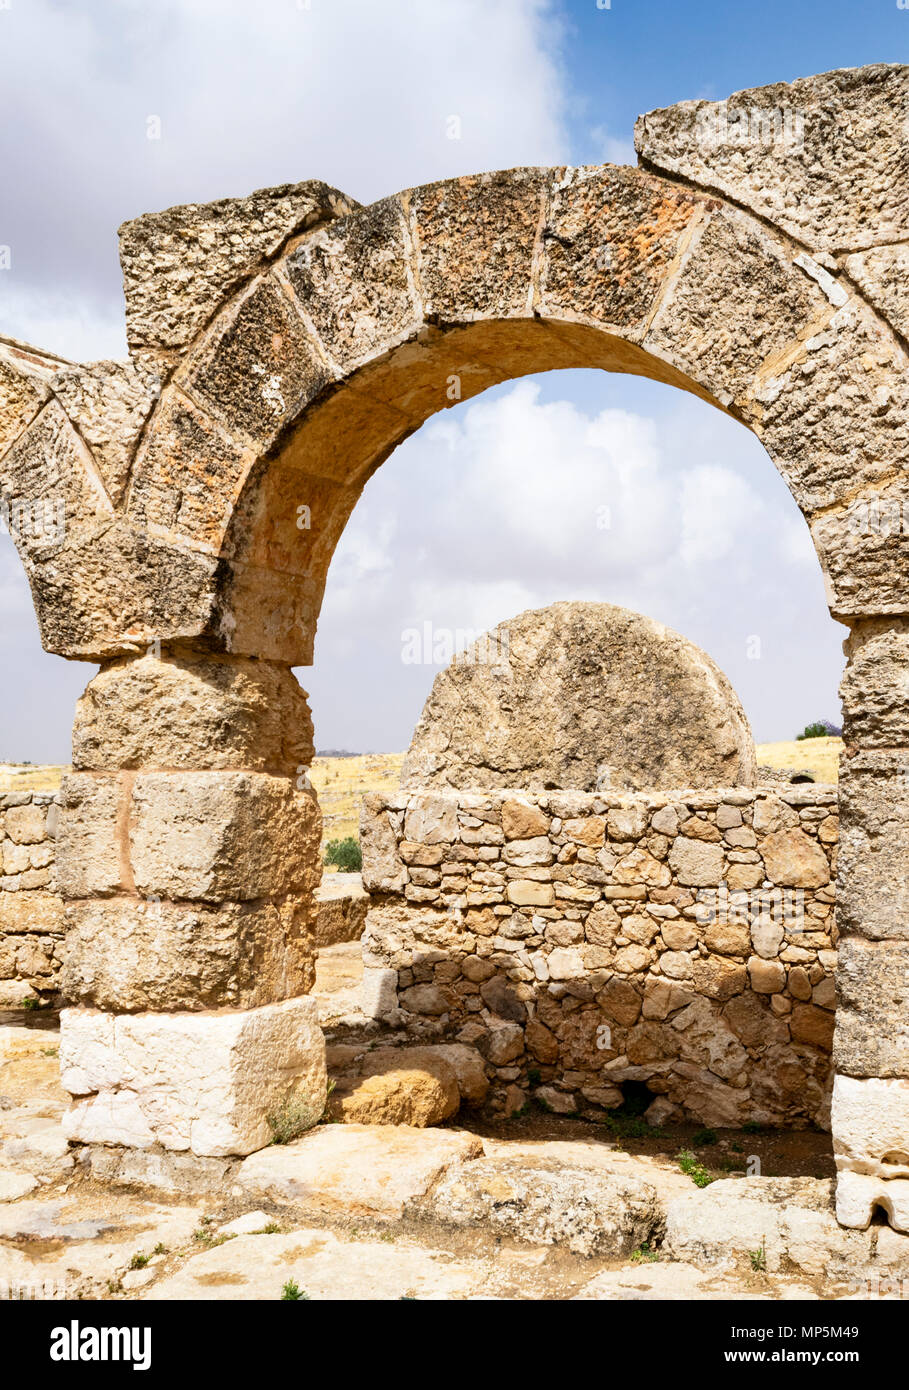 the massive rolling stone door of the ancient Susya synagogue viewed from the courtyard - Stock Image